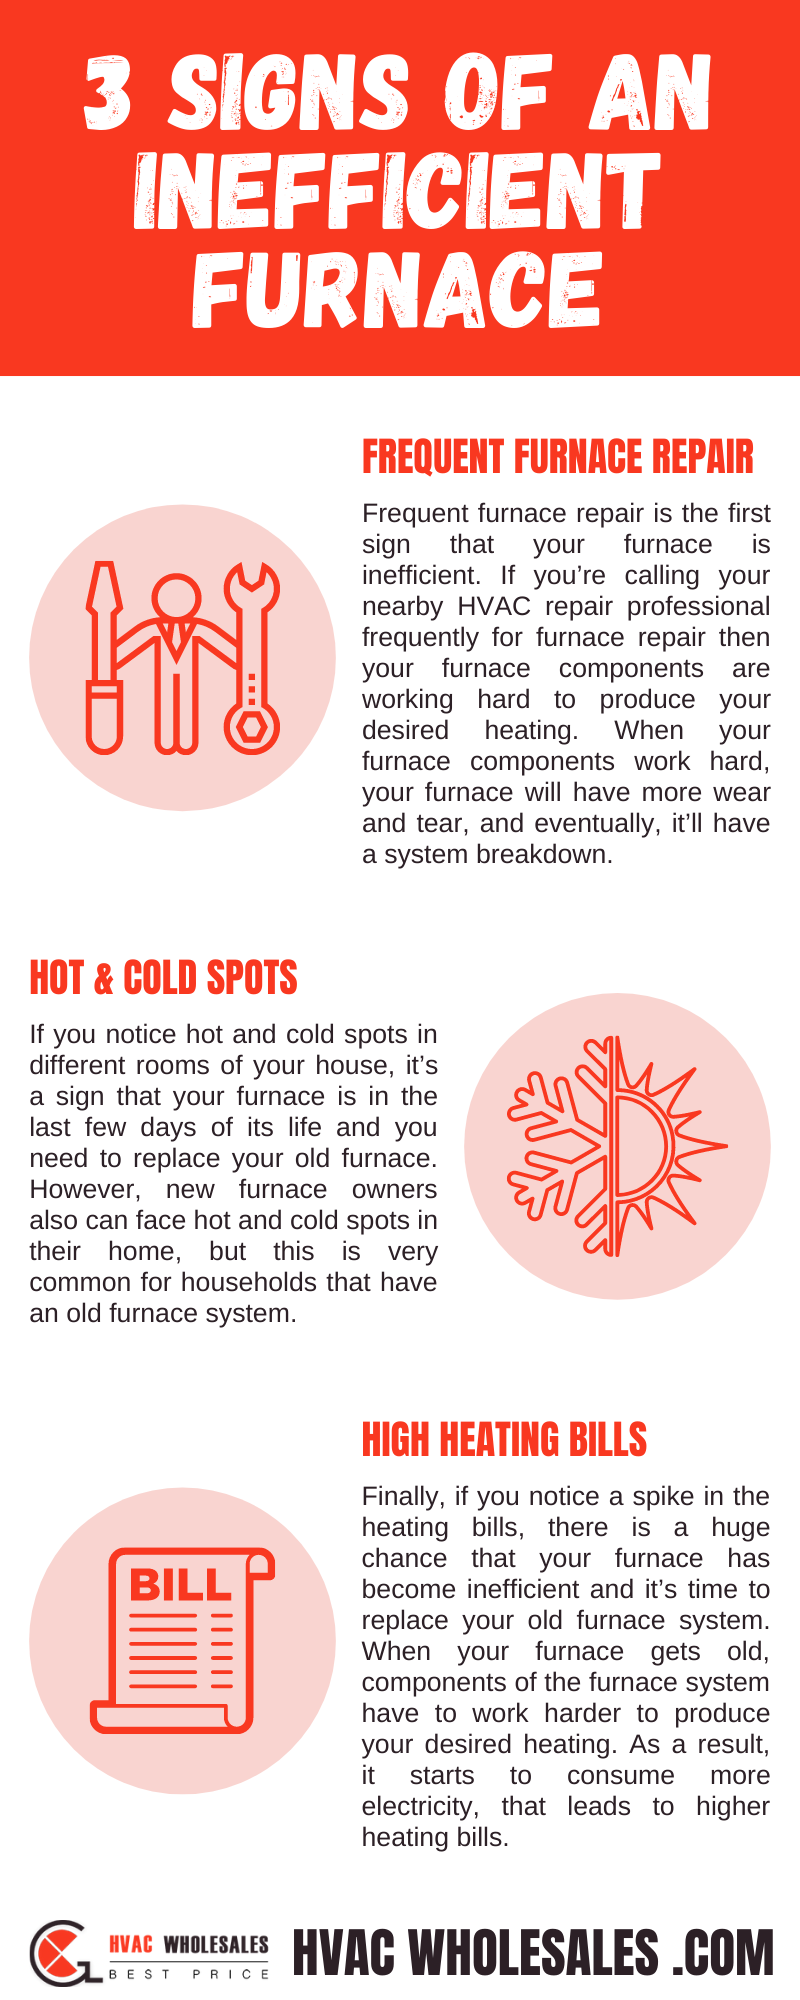 How Efficient Is Your 15-Year-Old Furnace?